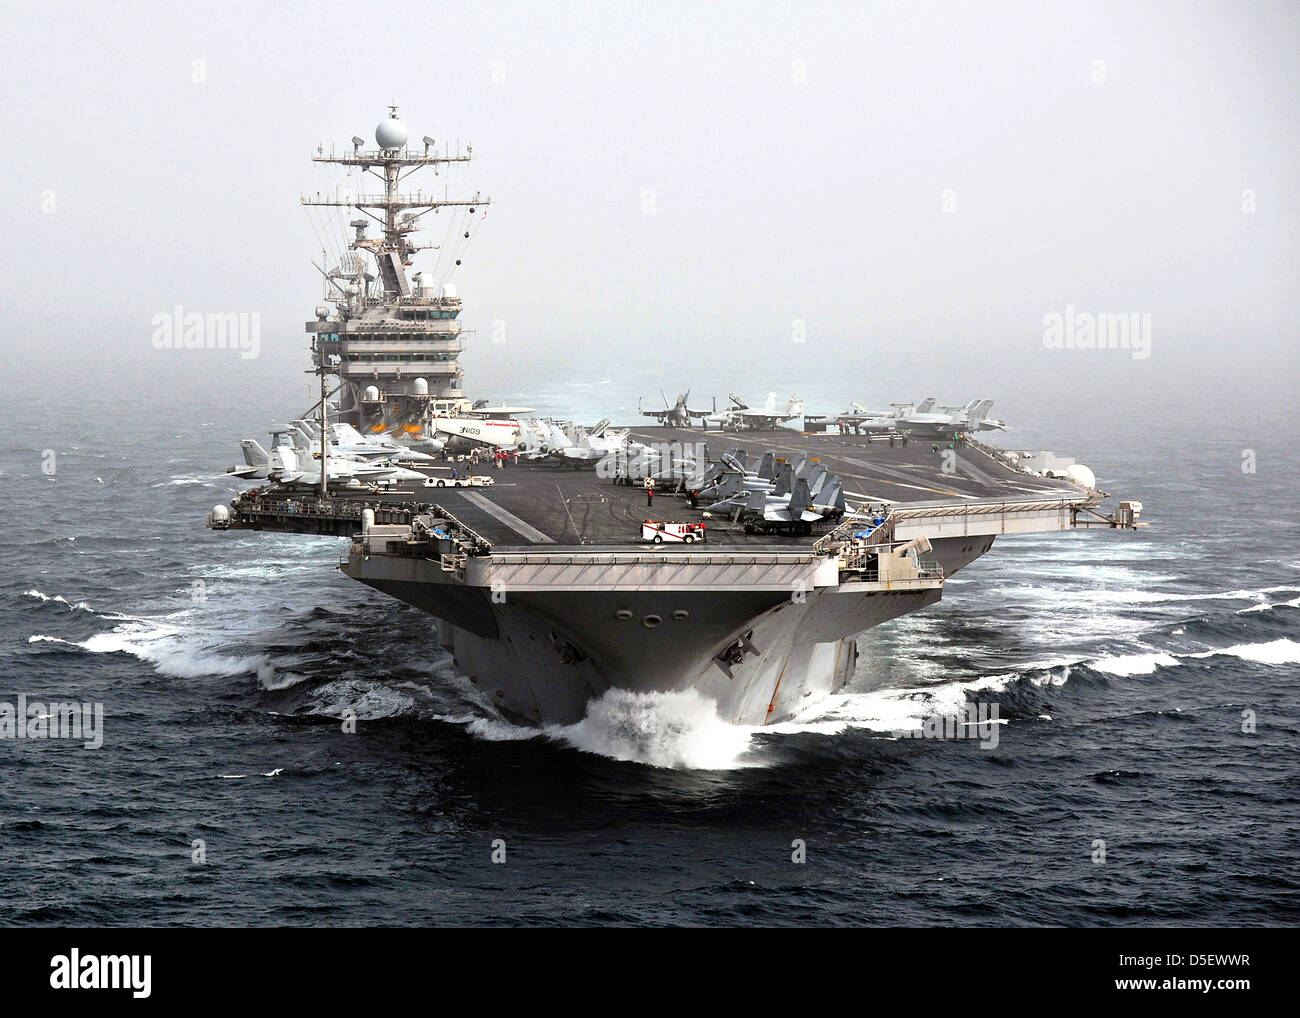 US Navy Nimitz-class nuclear aircraft carrier USS Abraham Lincoln operating as part of the 5th Fleet December 5, - Stock Image